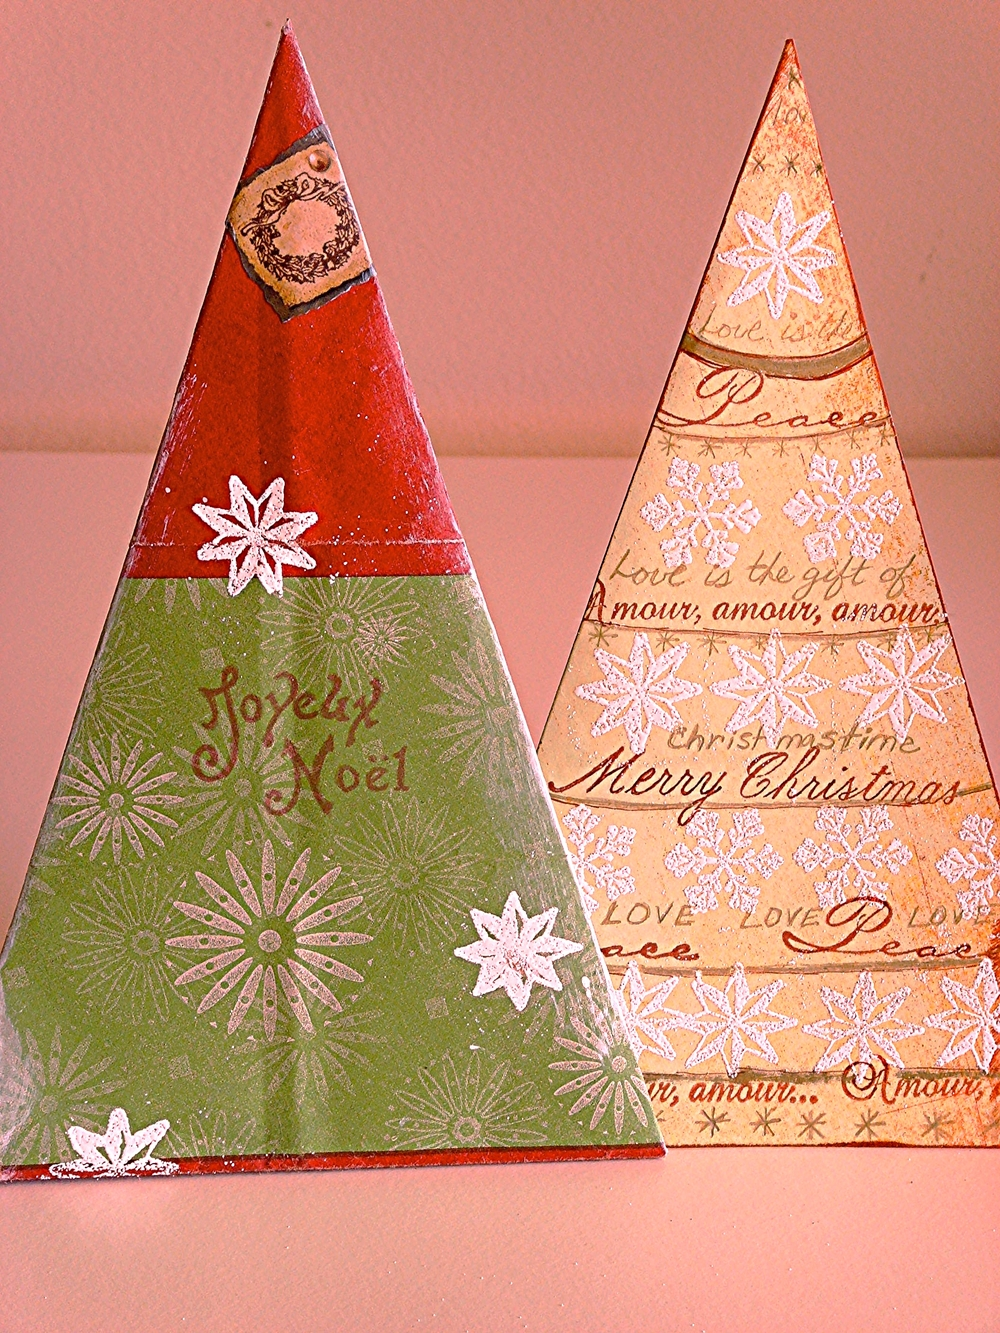 Up-cycled Shopping Bag Triangle Envelope & Christmas Card